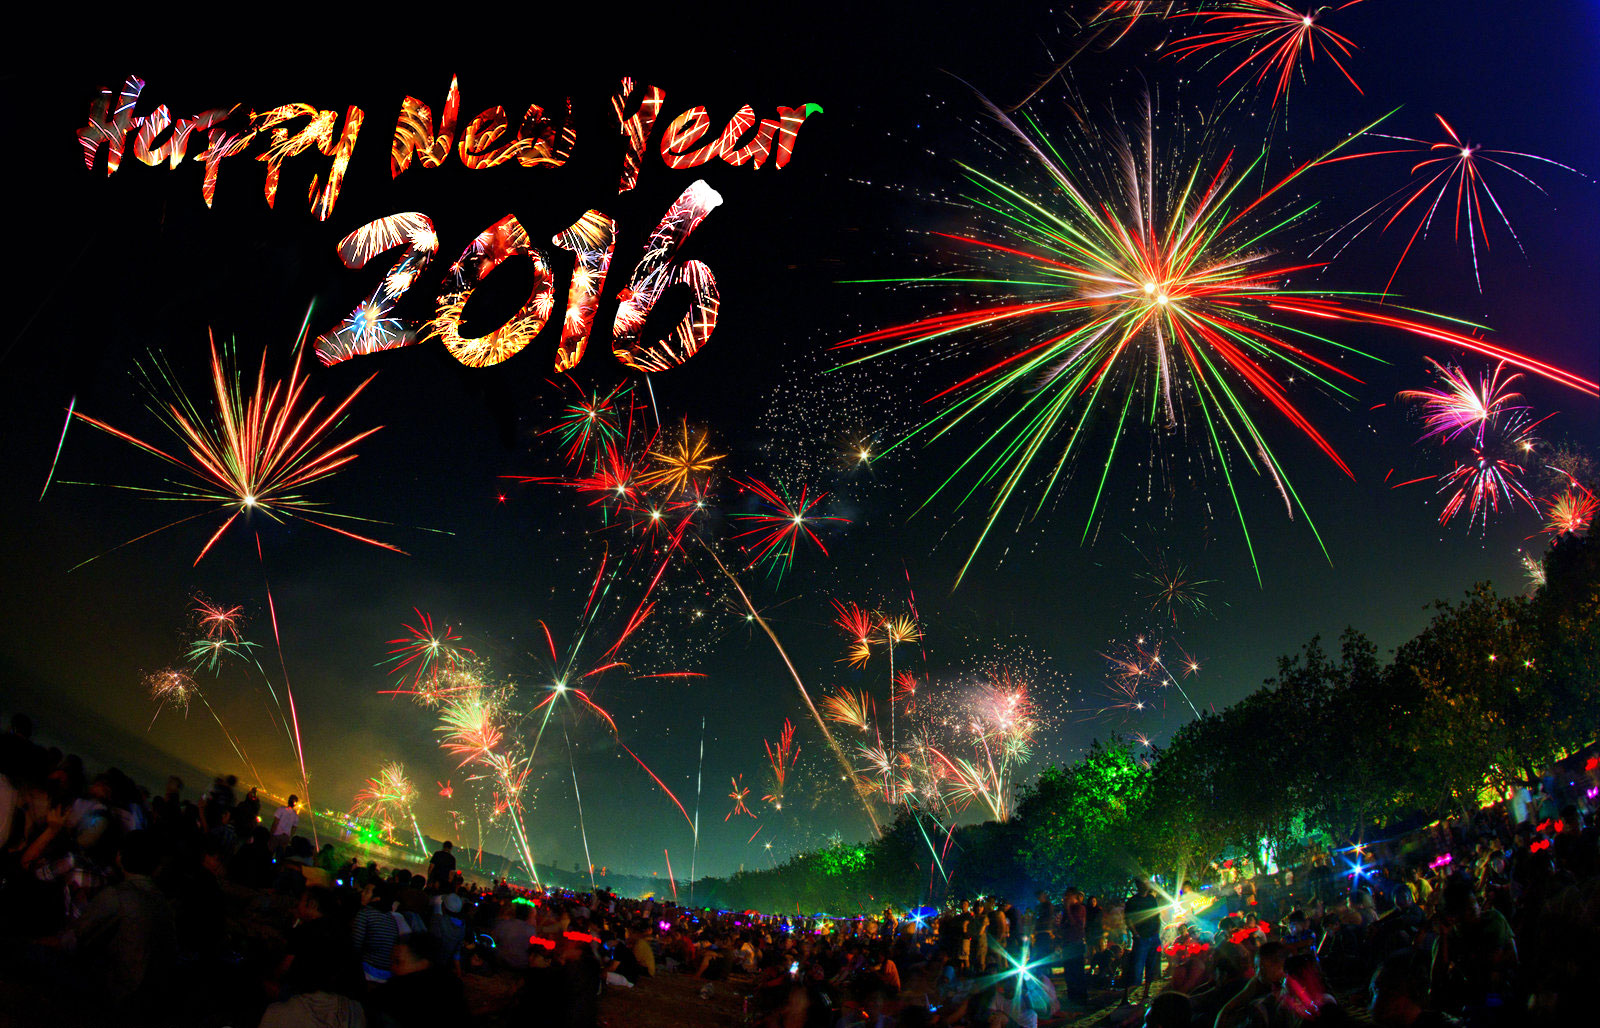 Happy New Year Wallpapers Hd Images Amp Facebook Cover